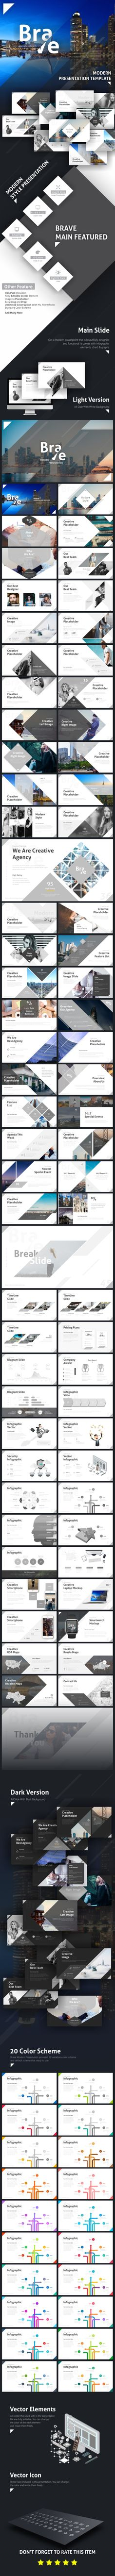 Brave Modern #Presentation Template - #Business #PowerPoint Templates Download here: https://graphicriver.net/item/brave-modern-presentation-template/19616973?ref=alena994